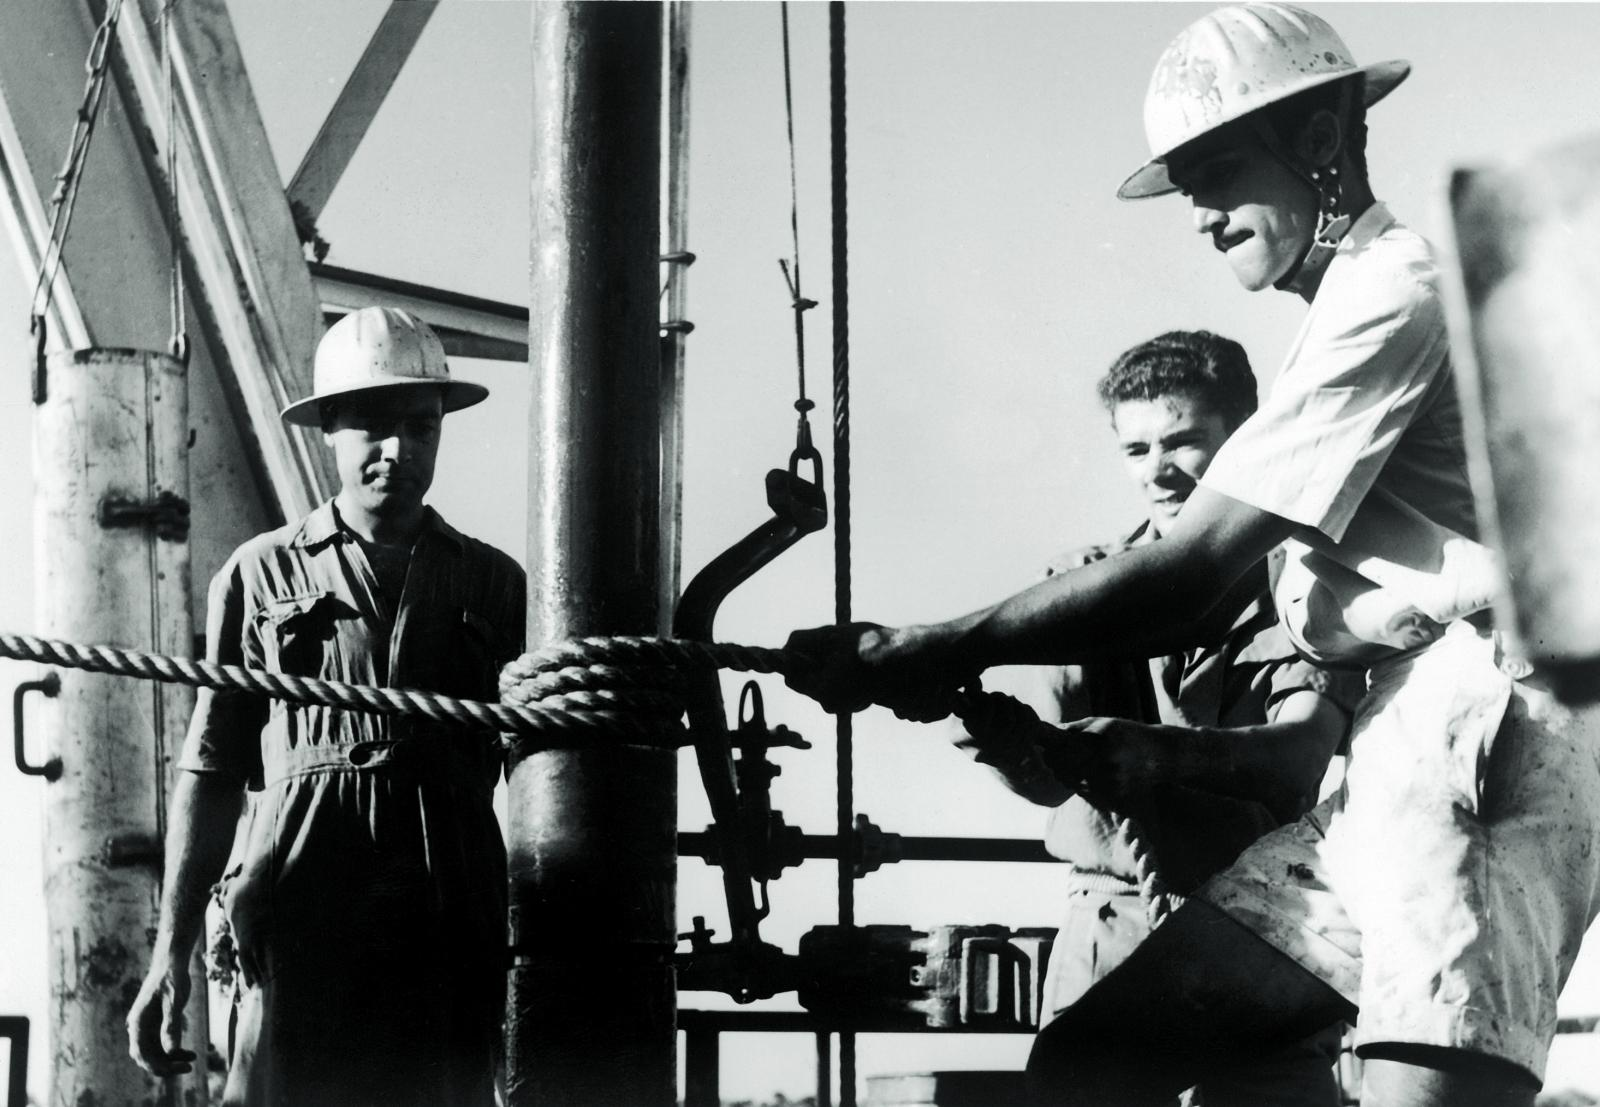 In those pioneering days, safety requirements were vastly different from today's standards. Here, for example, drill pipes are being tightened using a rope – a technique that cost several drillers their fingers – and samples are being taken at the wellhead.